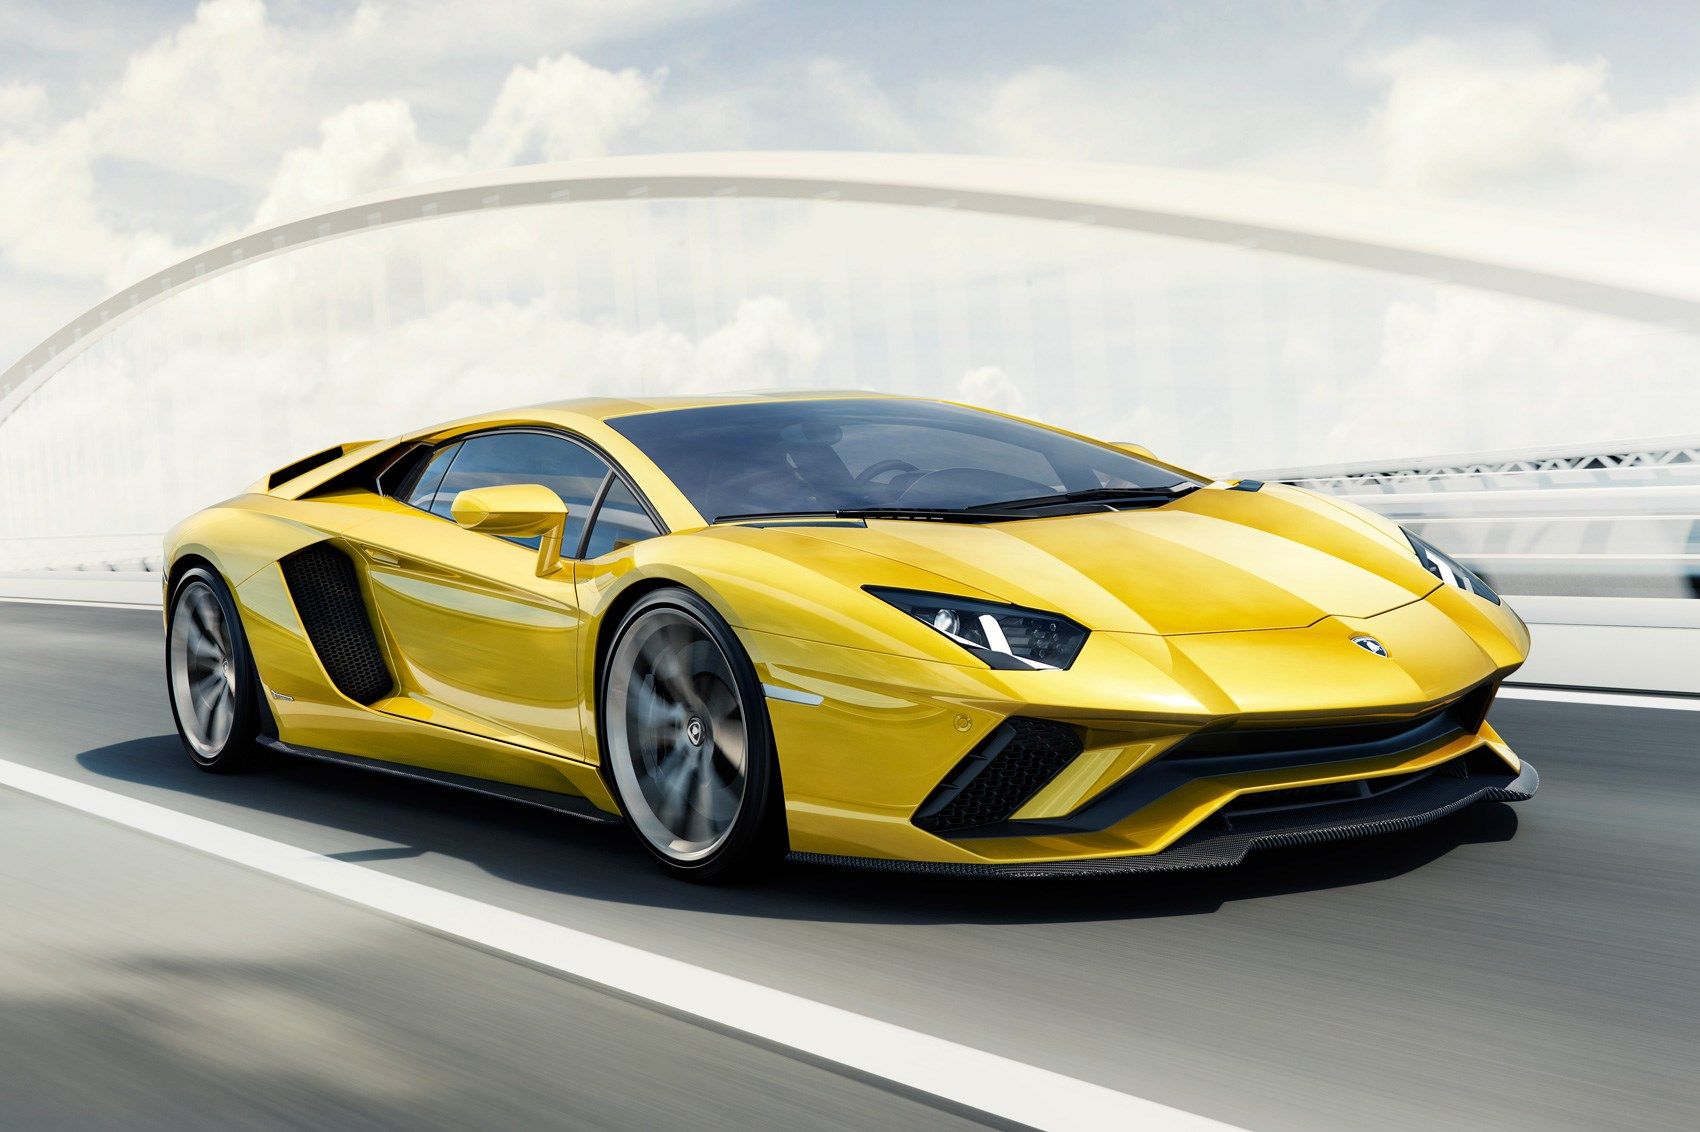 Lamborghini Car 2017 Model >> New 2017 Lamborghini Aventador S Unveiled By Car Magazine